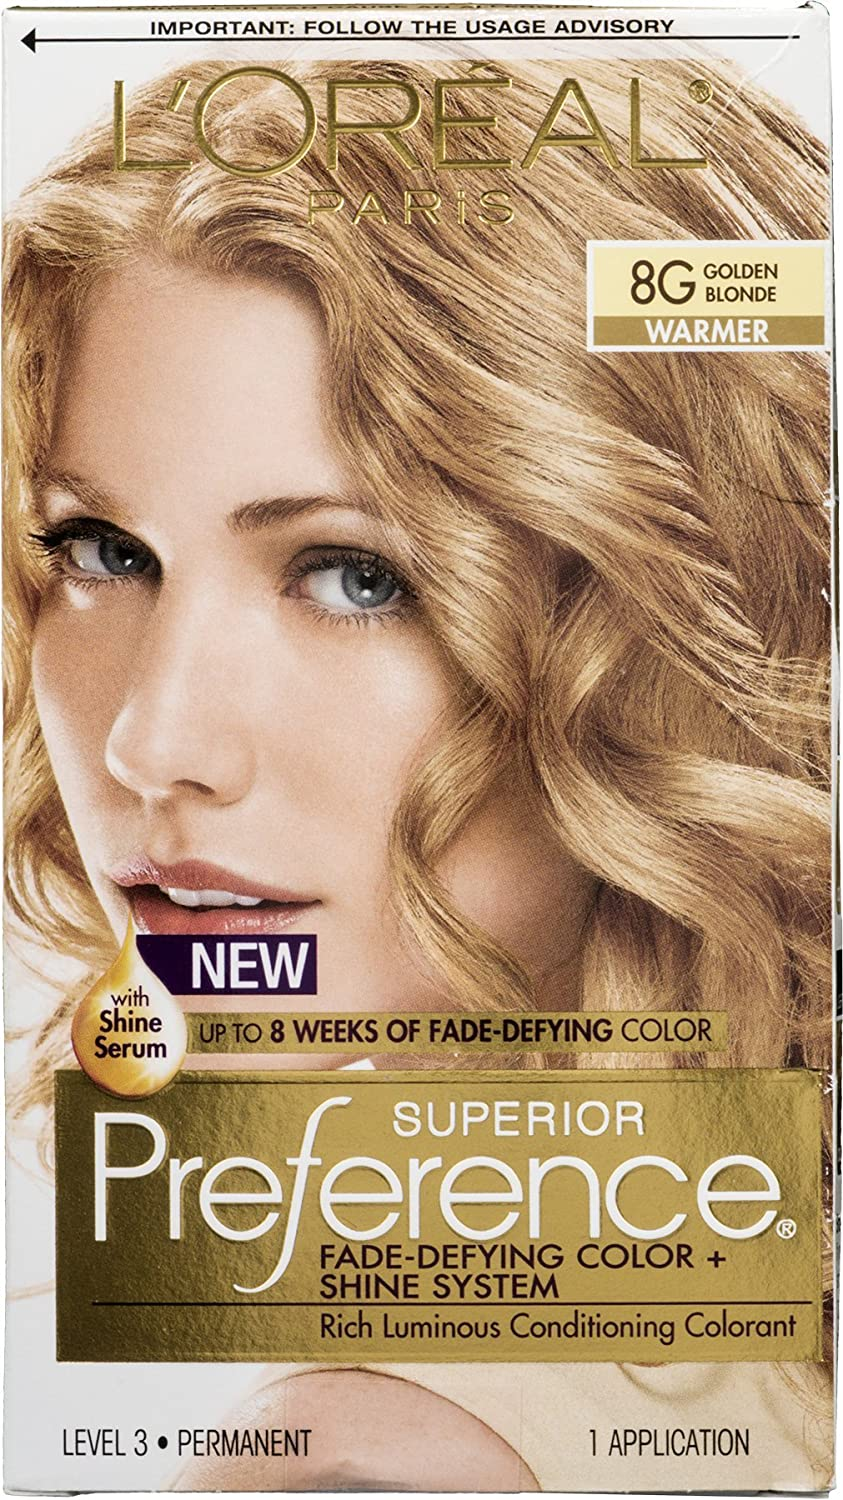 Delicate Pref Haircol 8g Size 1ct Loreal Preference Hair Color